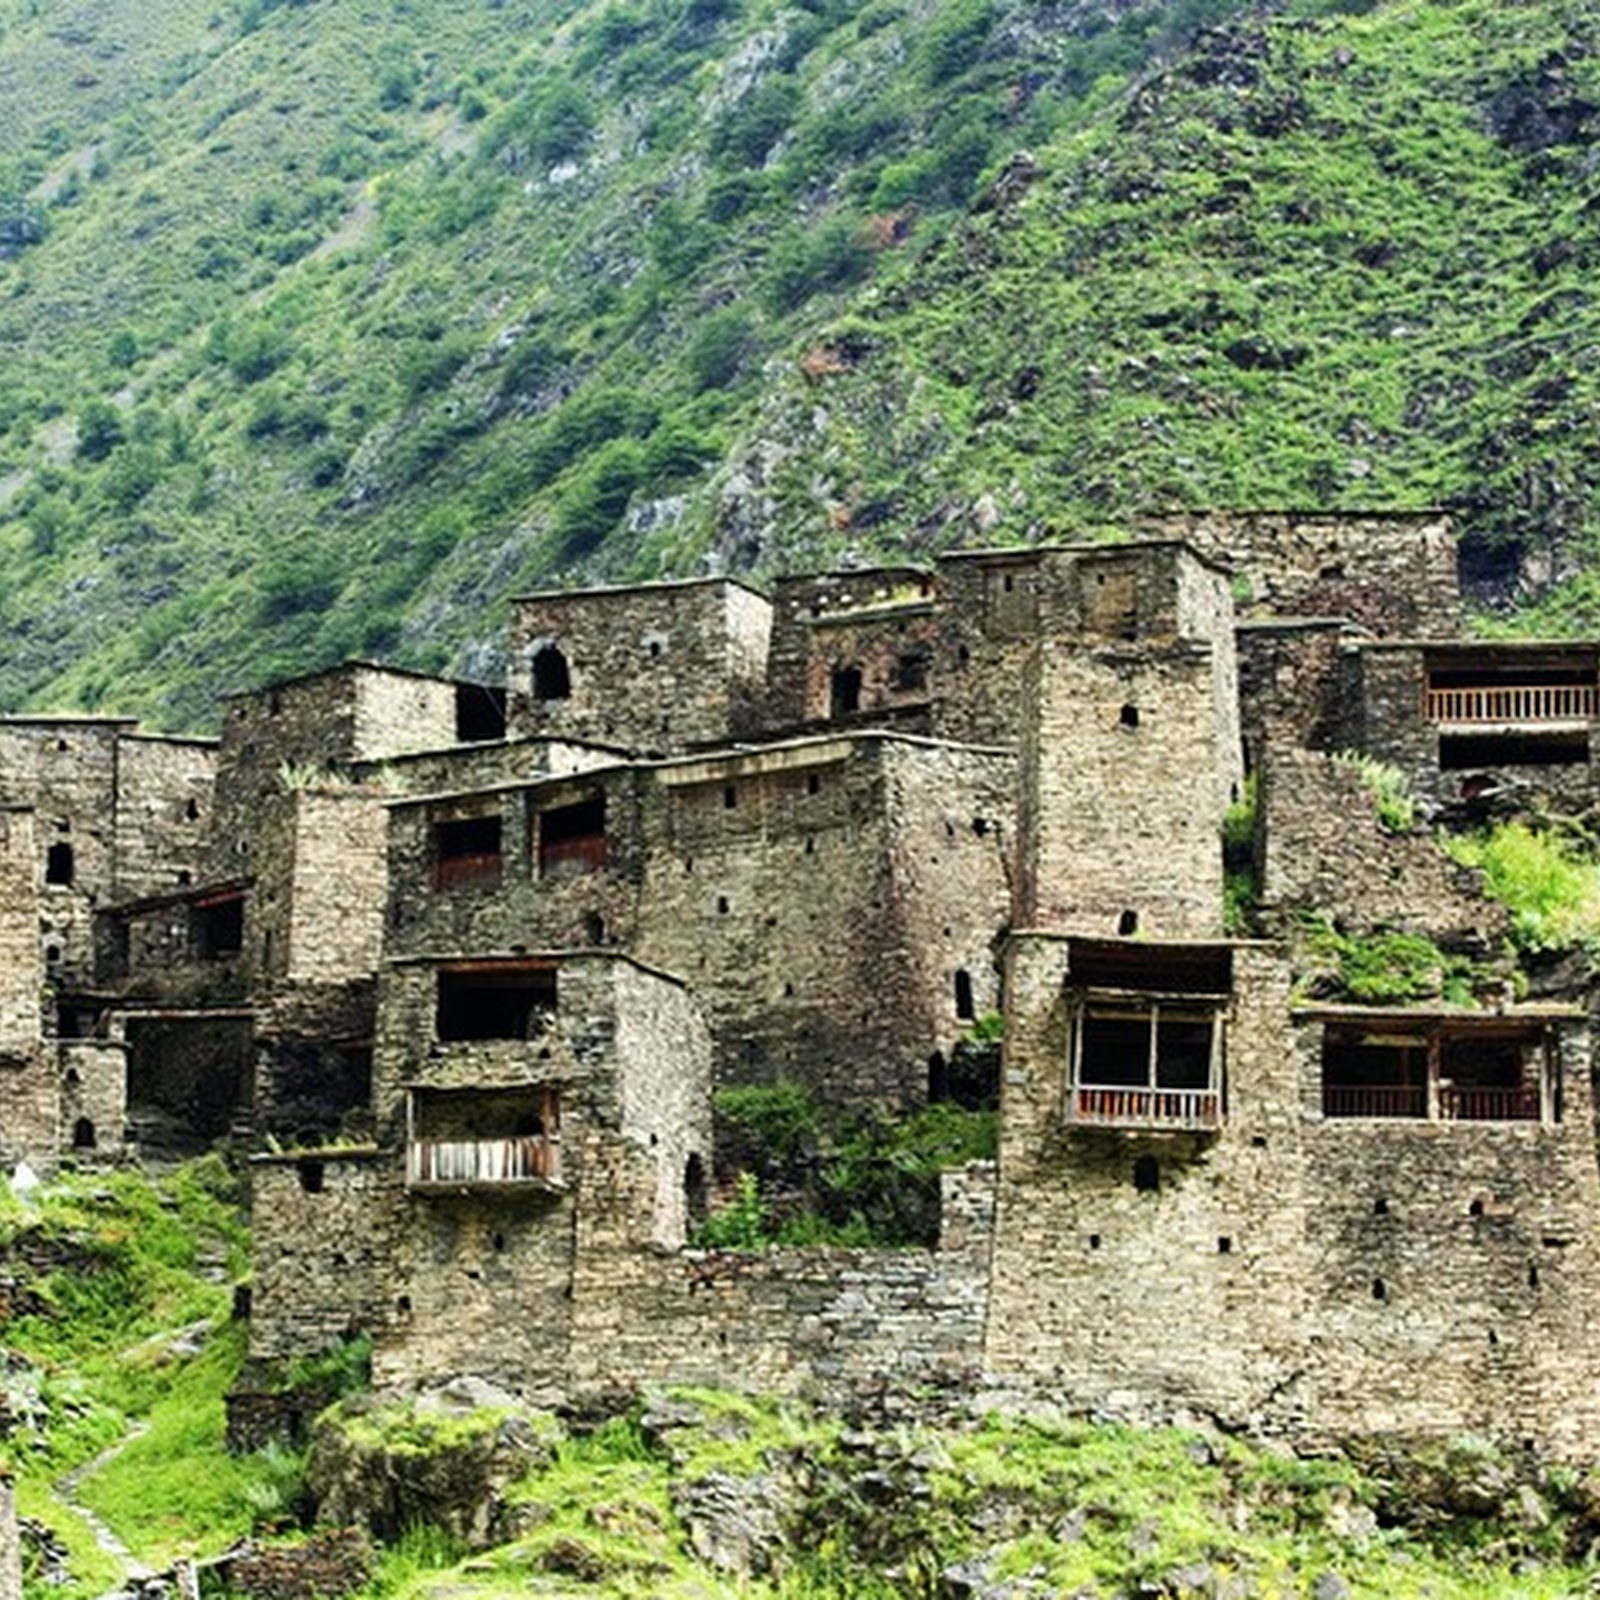 The Fortified Villages of Khevsureti